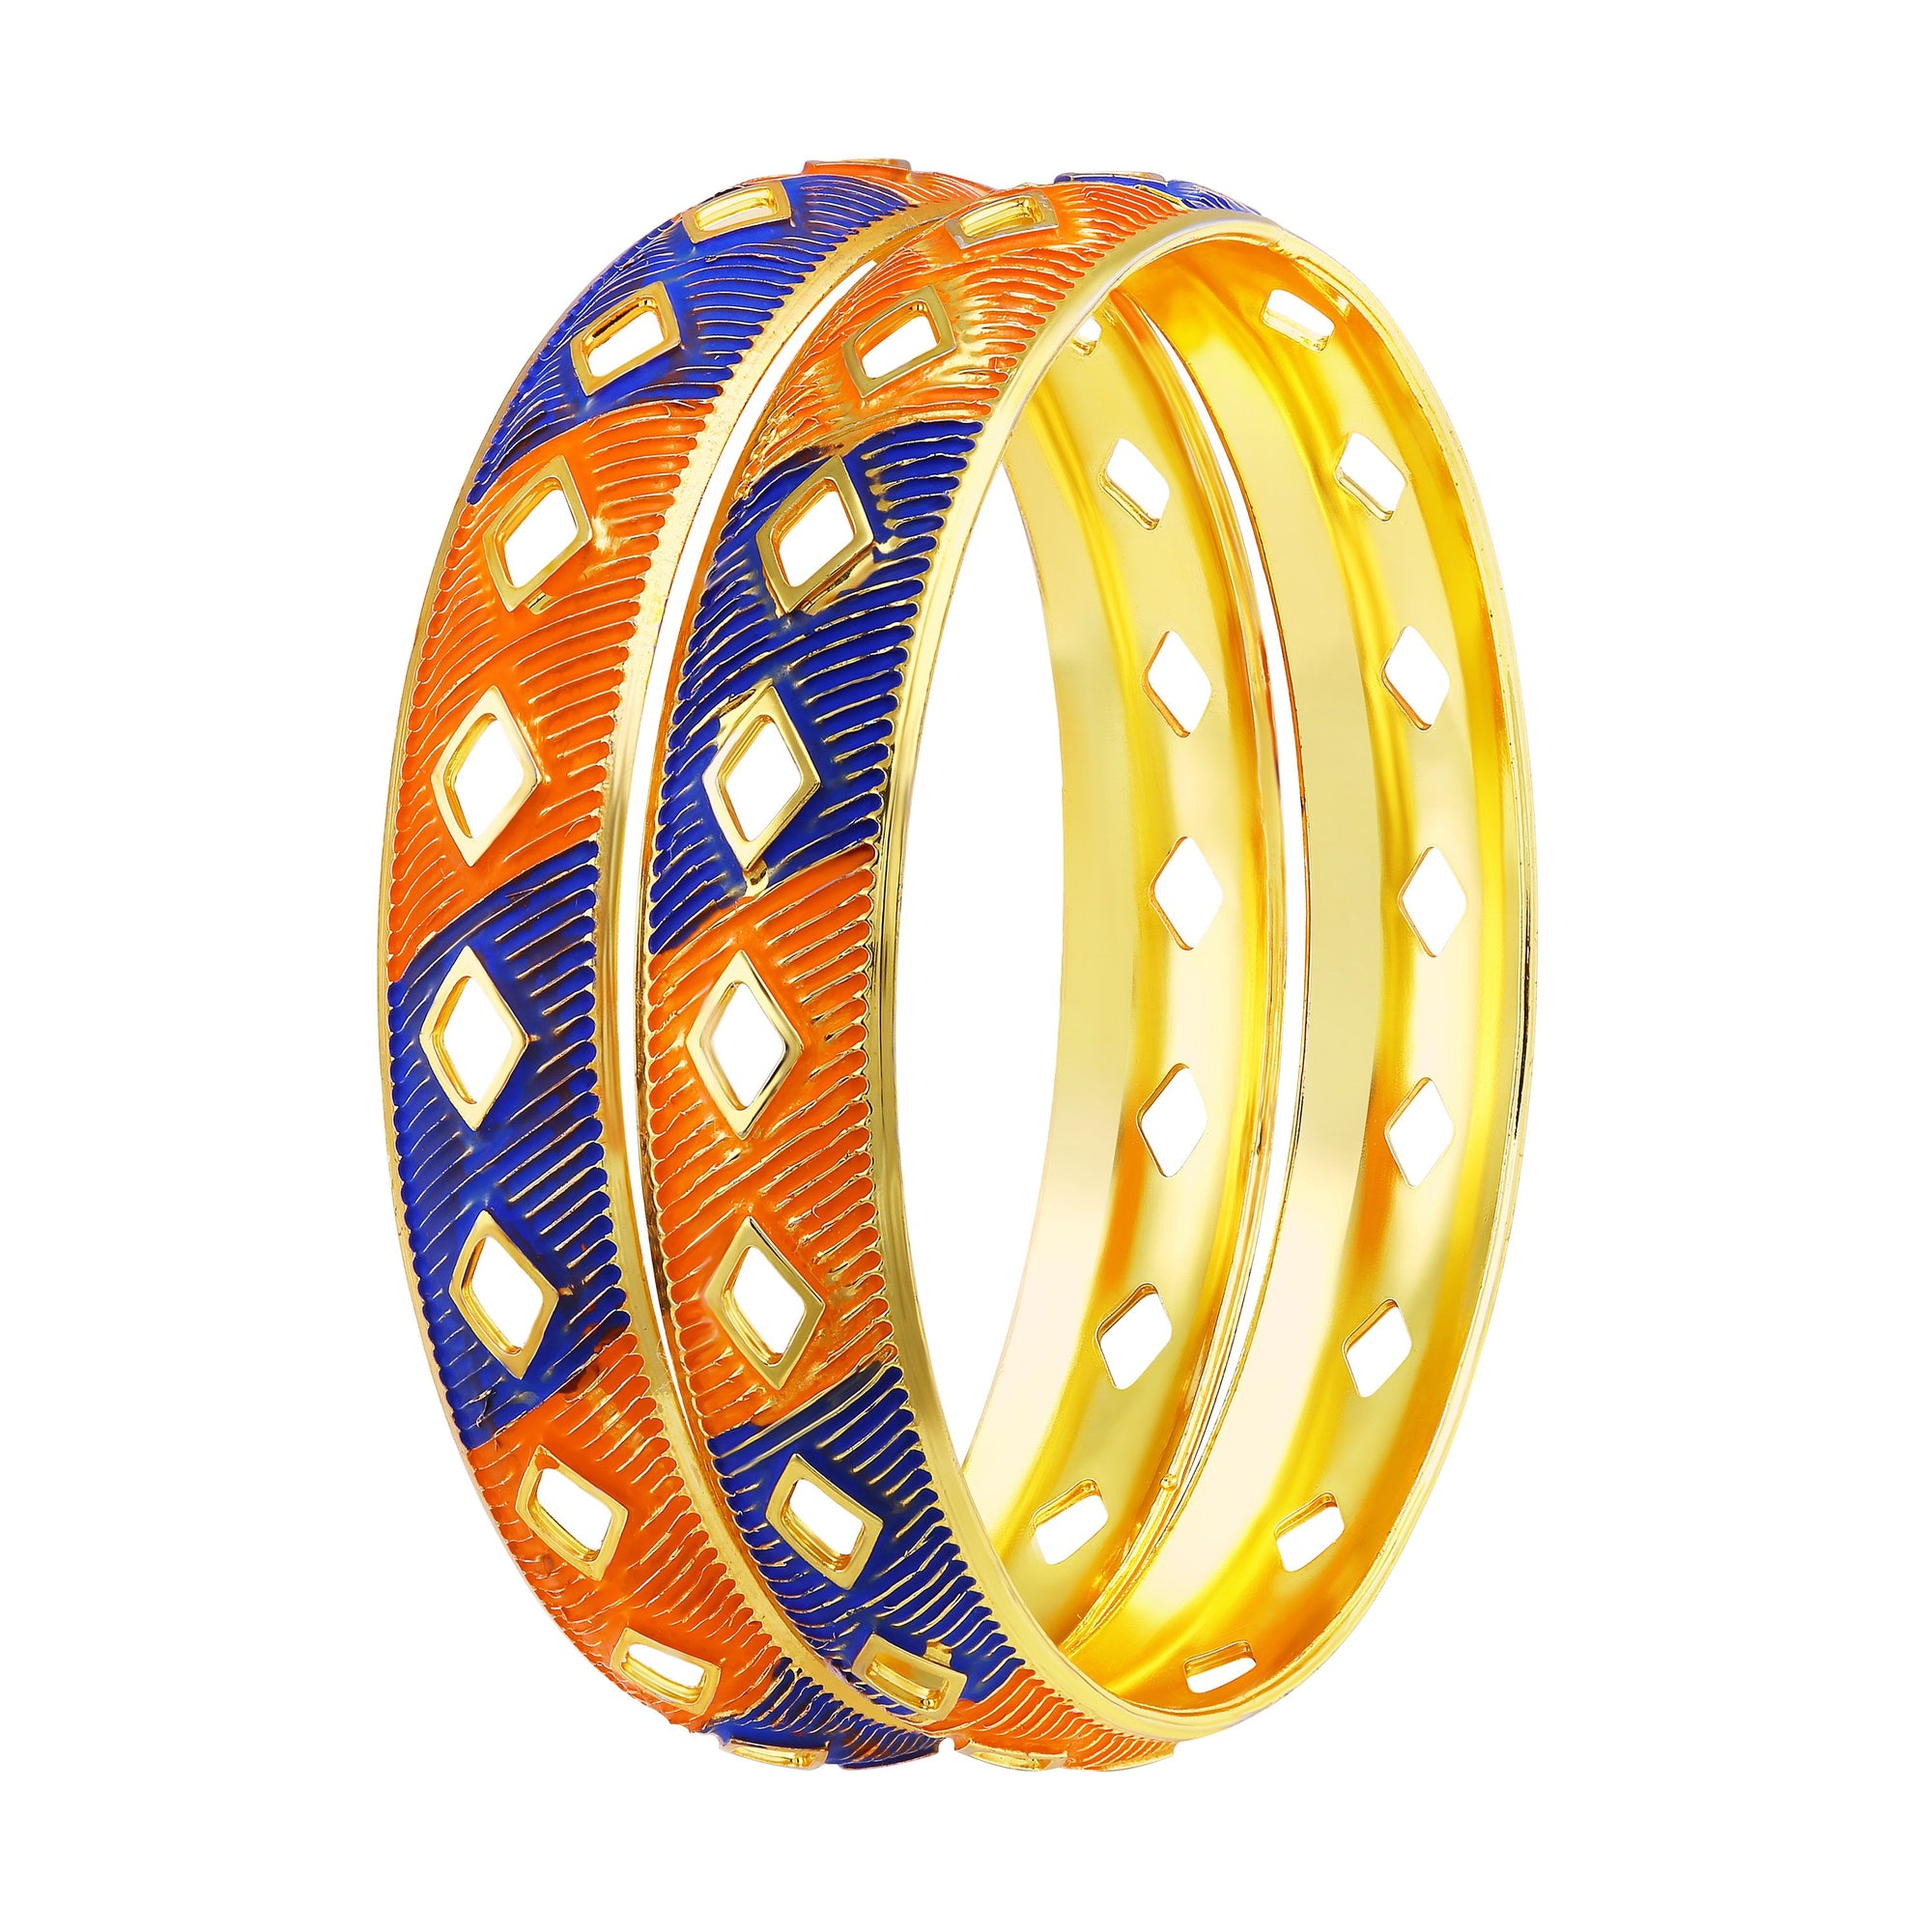 Asmitta Jewellery Gold Enamel Bangle  -BG168